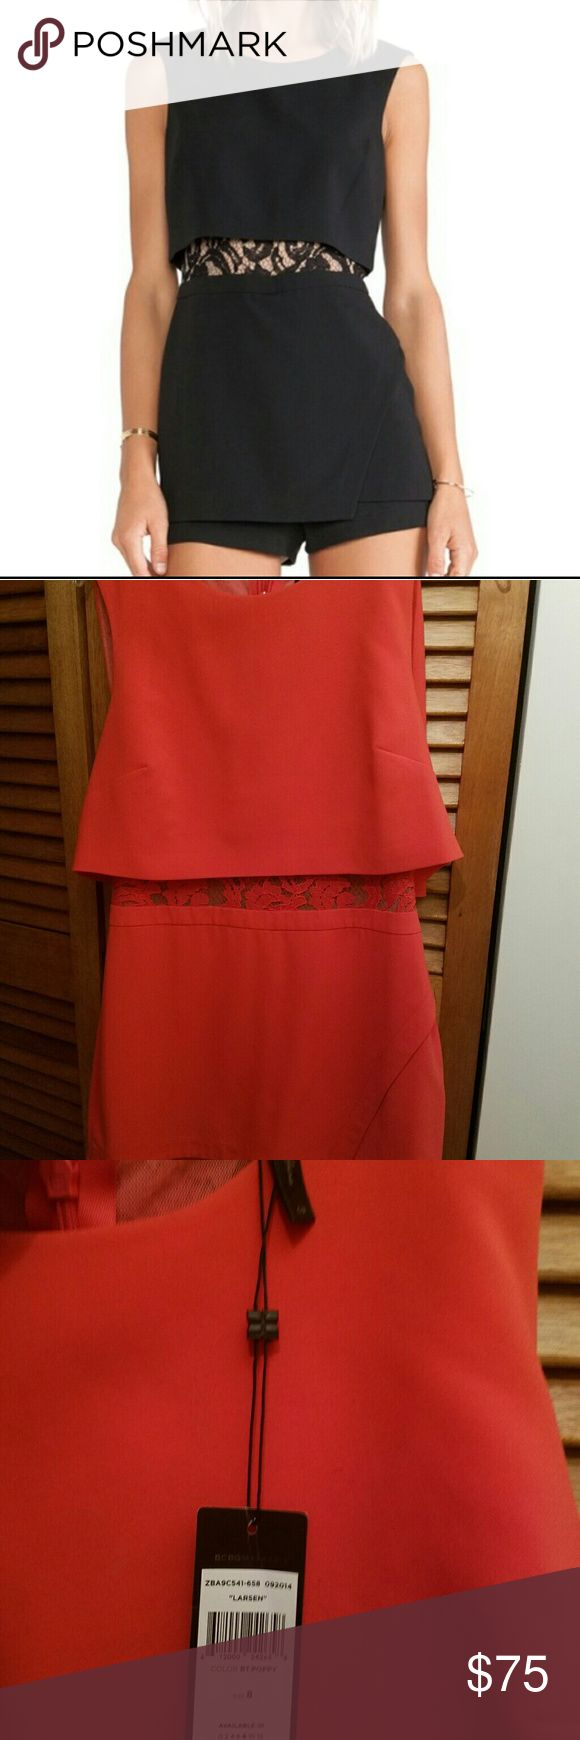 NWT Bcbg Larsen In CORAL size 8  romper Gorgeous coral bcbg romper wanted to use but now it fits too big on me. Color is coral!!! BCBGMaxAzria Pants Jumpsuits & Rompers